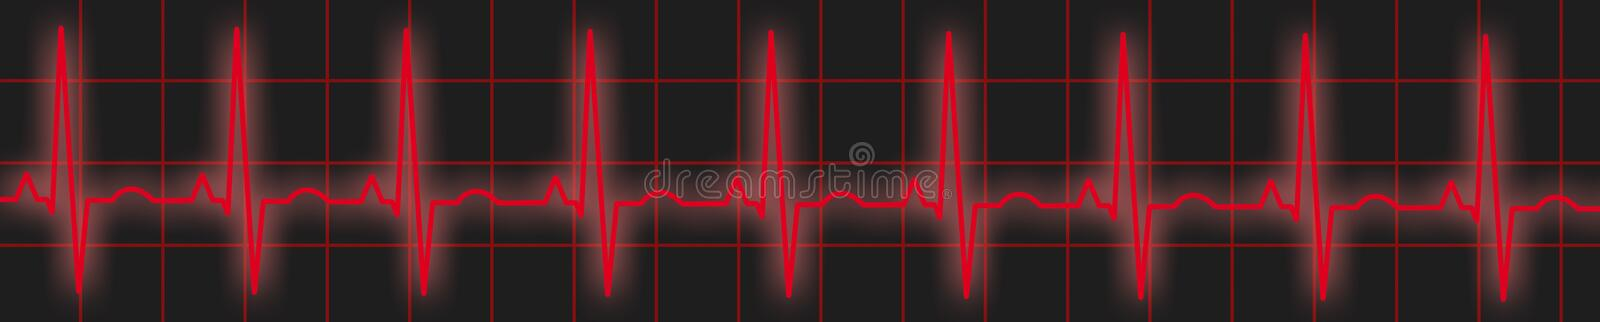 Red ECG Trace. Illustration of an ECG or EKG trace vector illustration